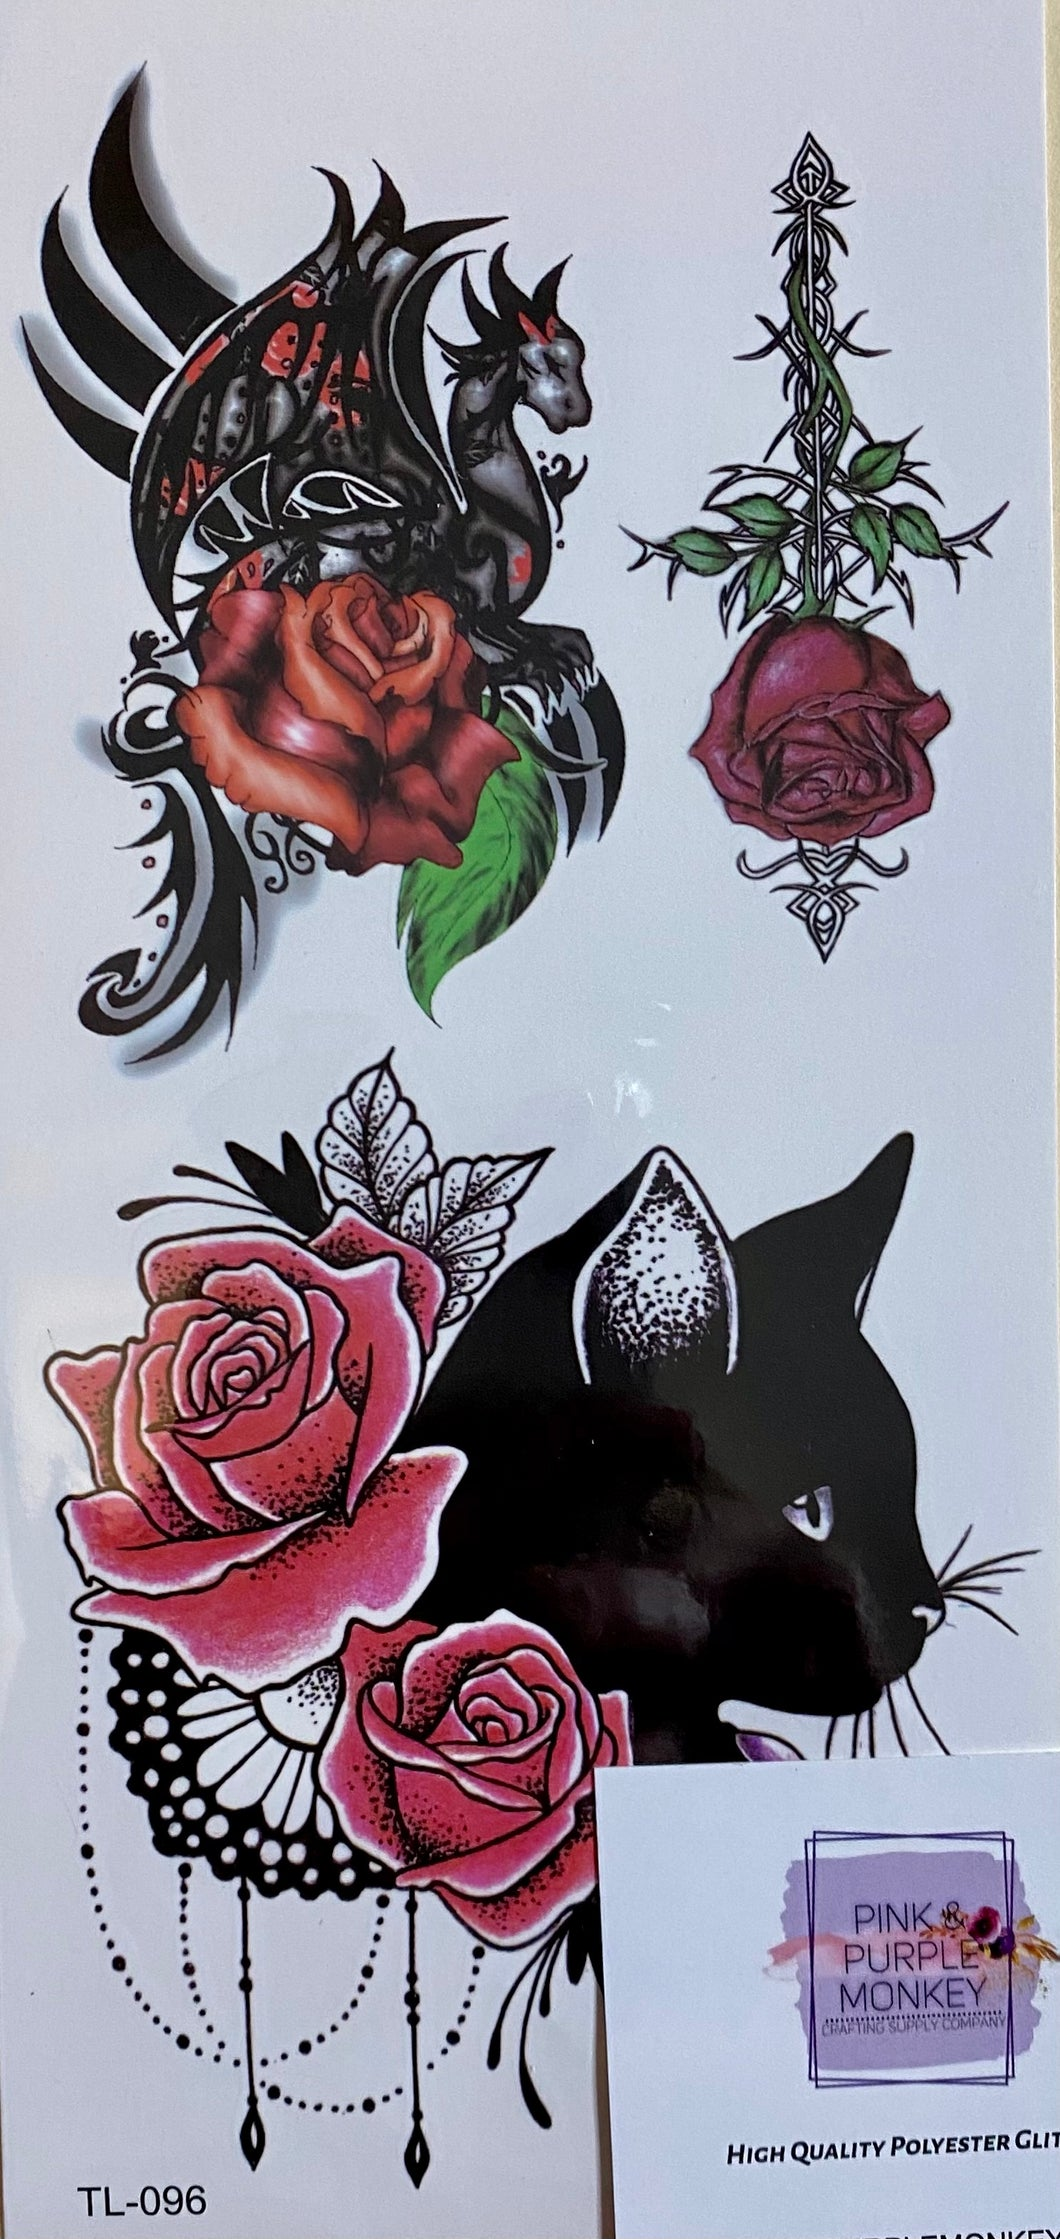 Black Cat & Dragon with Roses Tattoo - 7 x 3